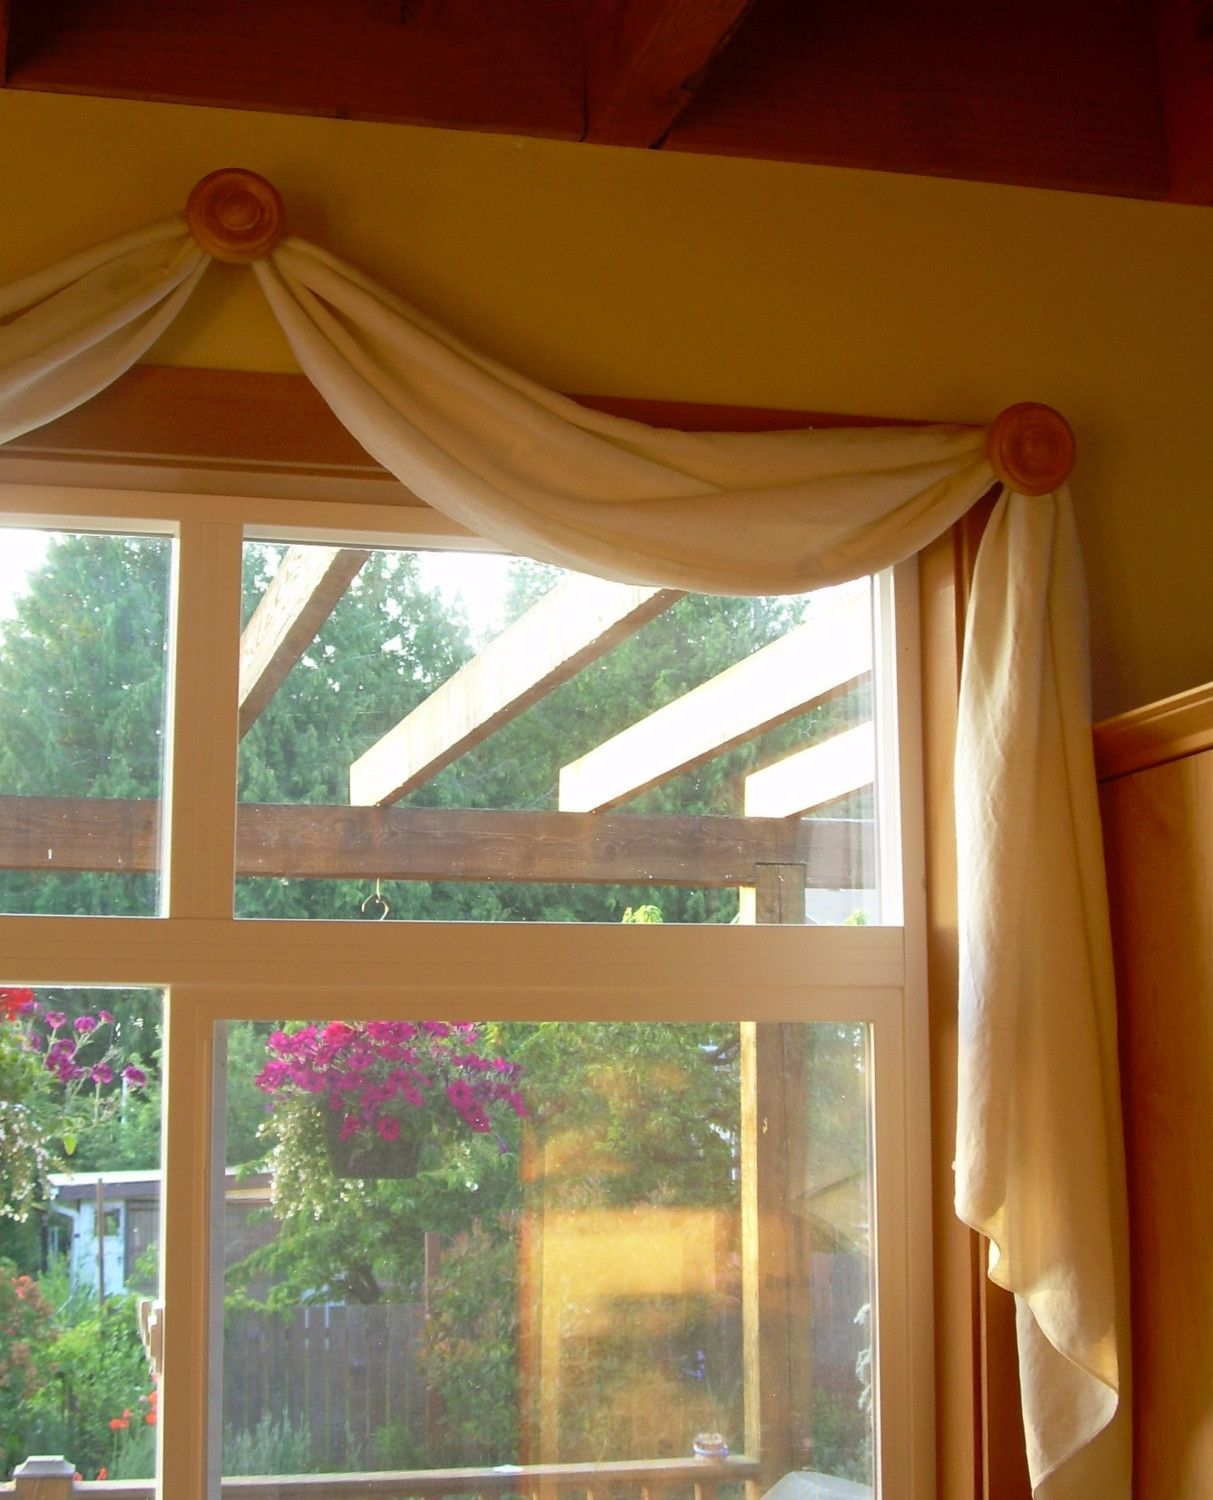 window treatment ideas for bay windows in living room interior design pictures best 25+ large coverings on pinterest ...